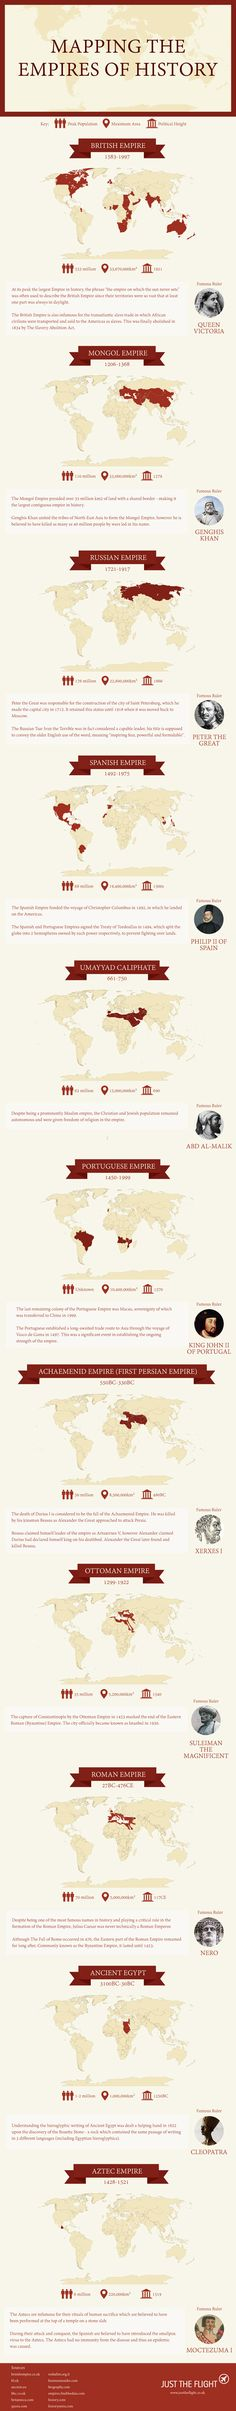 Mapping the Biggest Empires throughout History Infographic History Of The World, History Of History, World History Teaching, World History Facts, World History Classroom, History Posters, History Timeline, British History, Ancient History